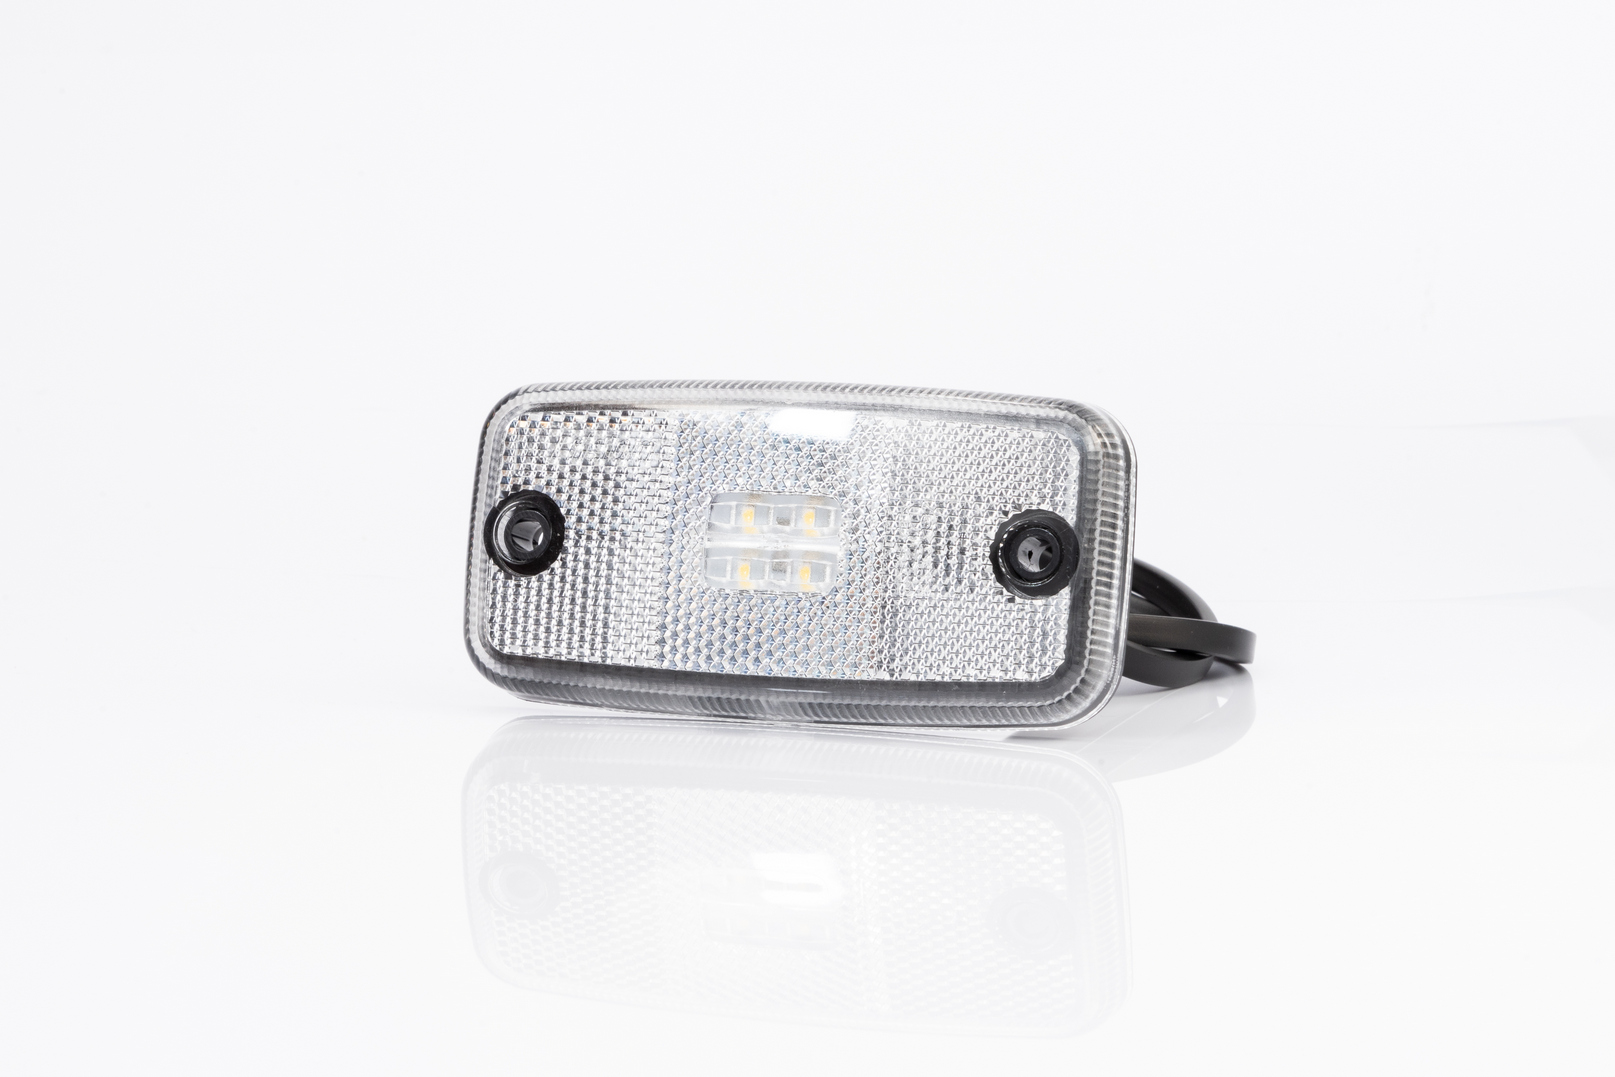 Pozička  FT-019 LED čirá 12/24V